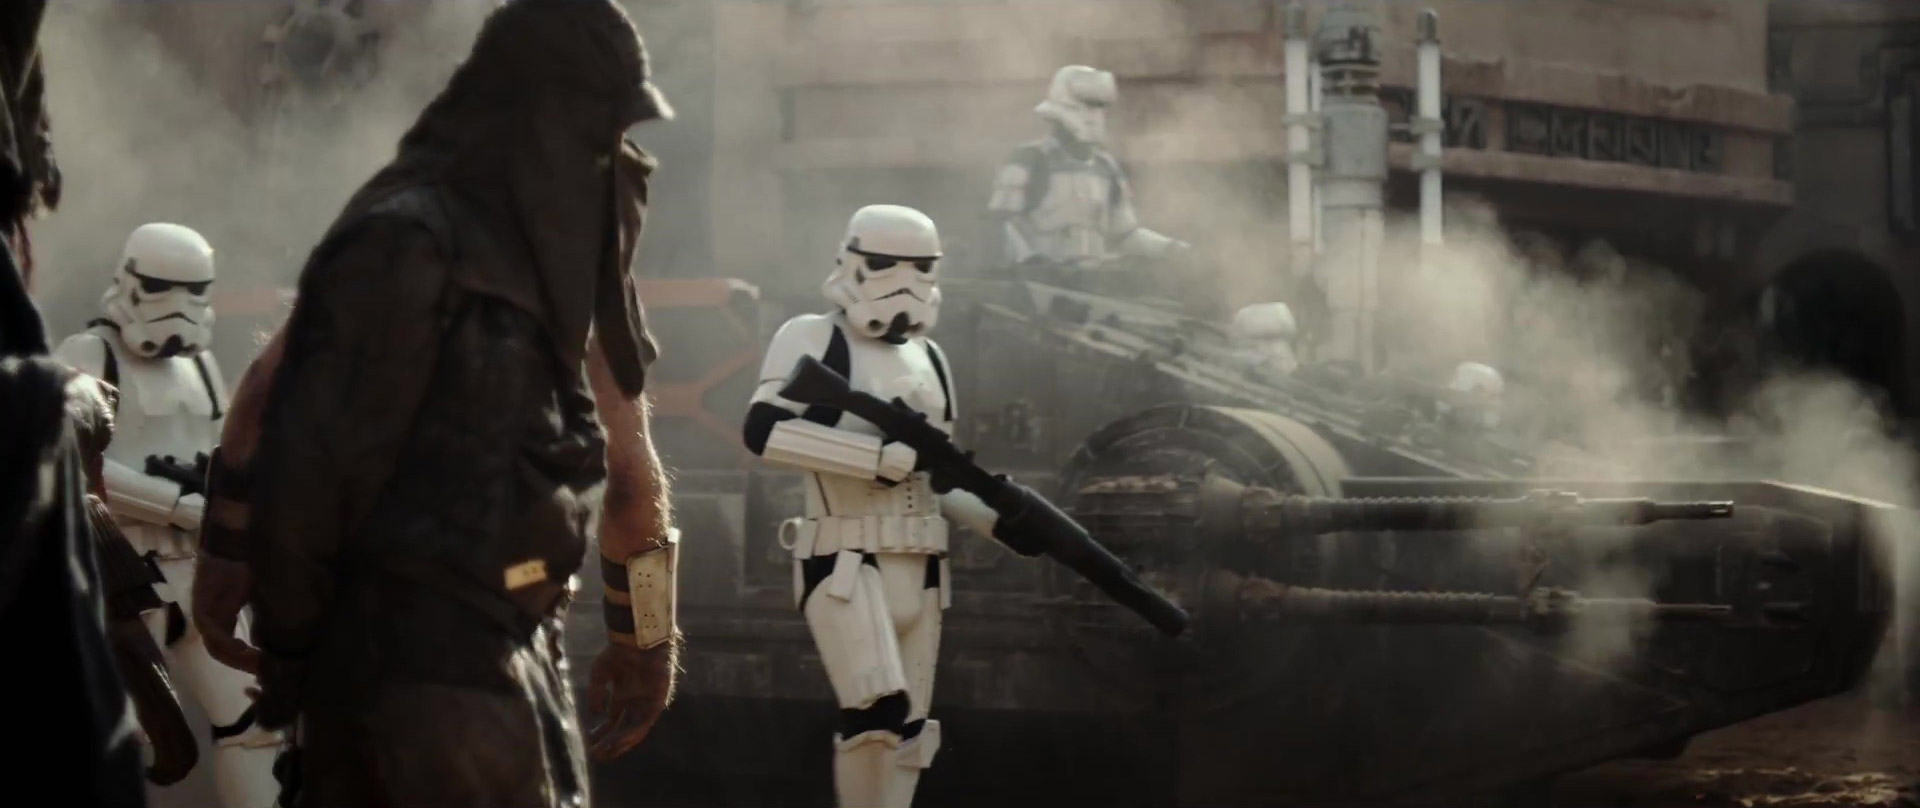 starwars-rogue-one-cool-first-teaser-trailer